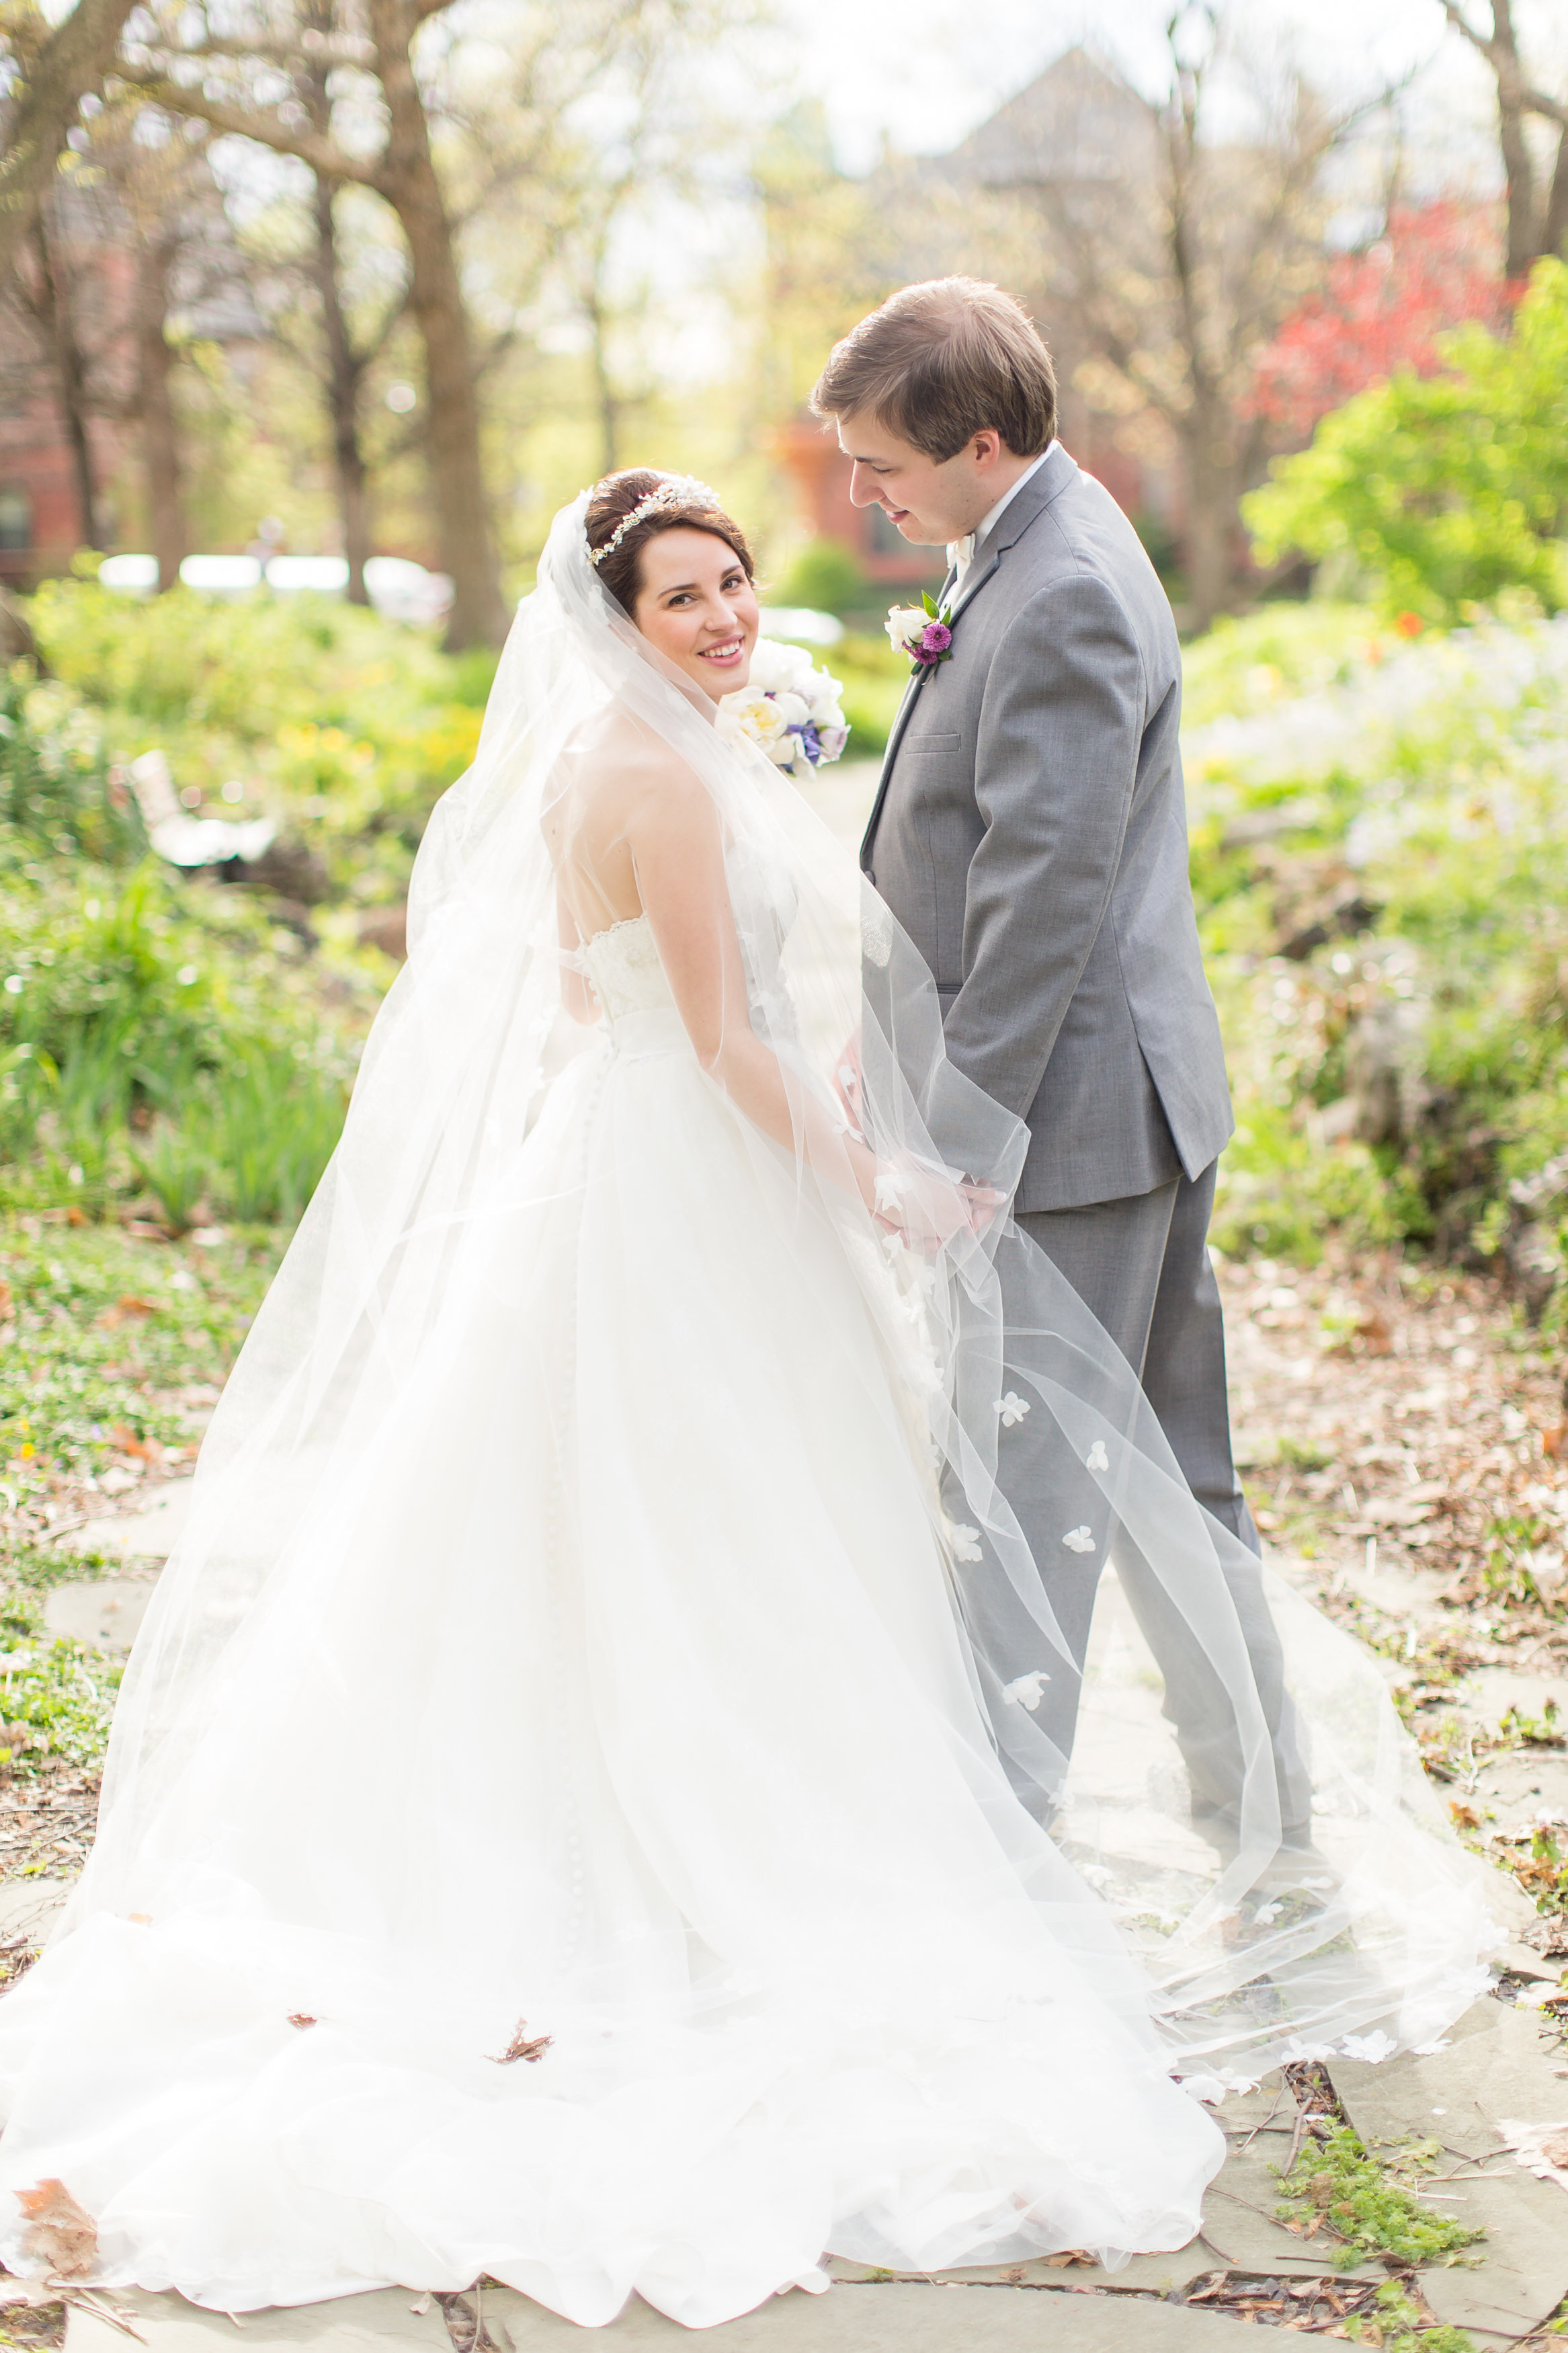 #STLBRIDE St. Louis Wedding Photog